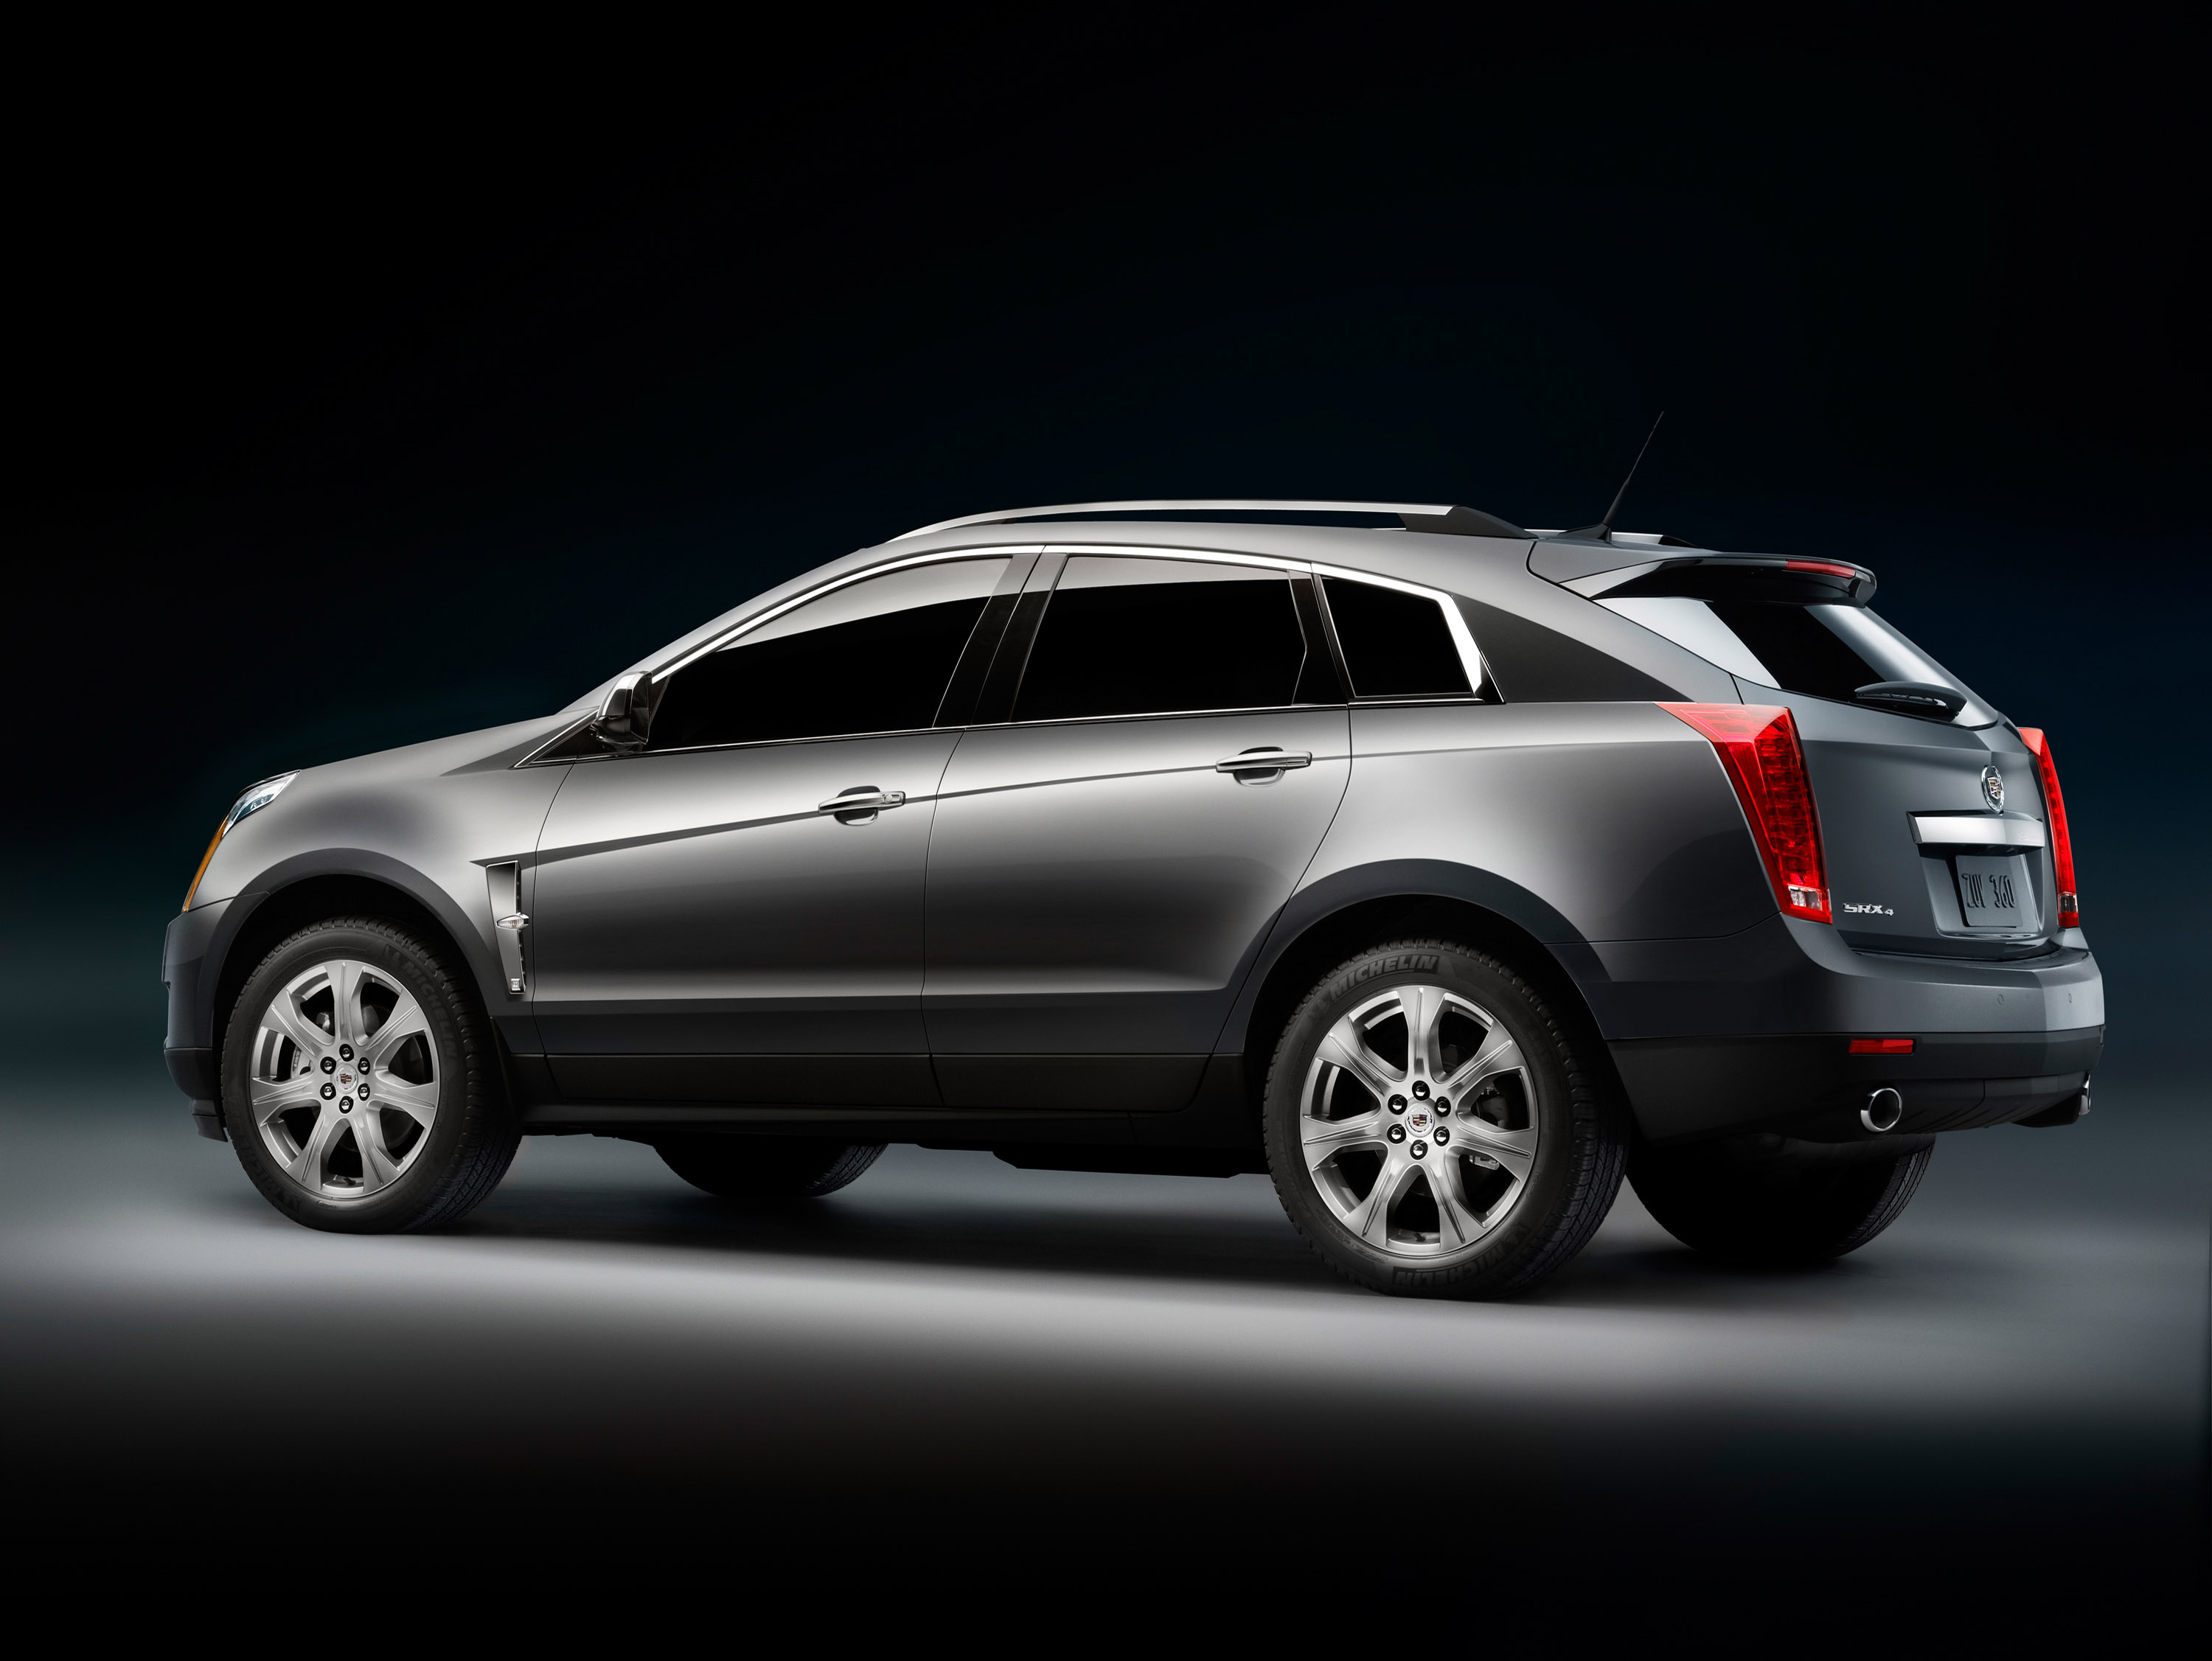 2010 cadillac srx a distinctive alternative for today s. Black Bedroom Furniture Sets. Home Design Ideas